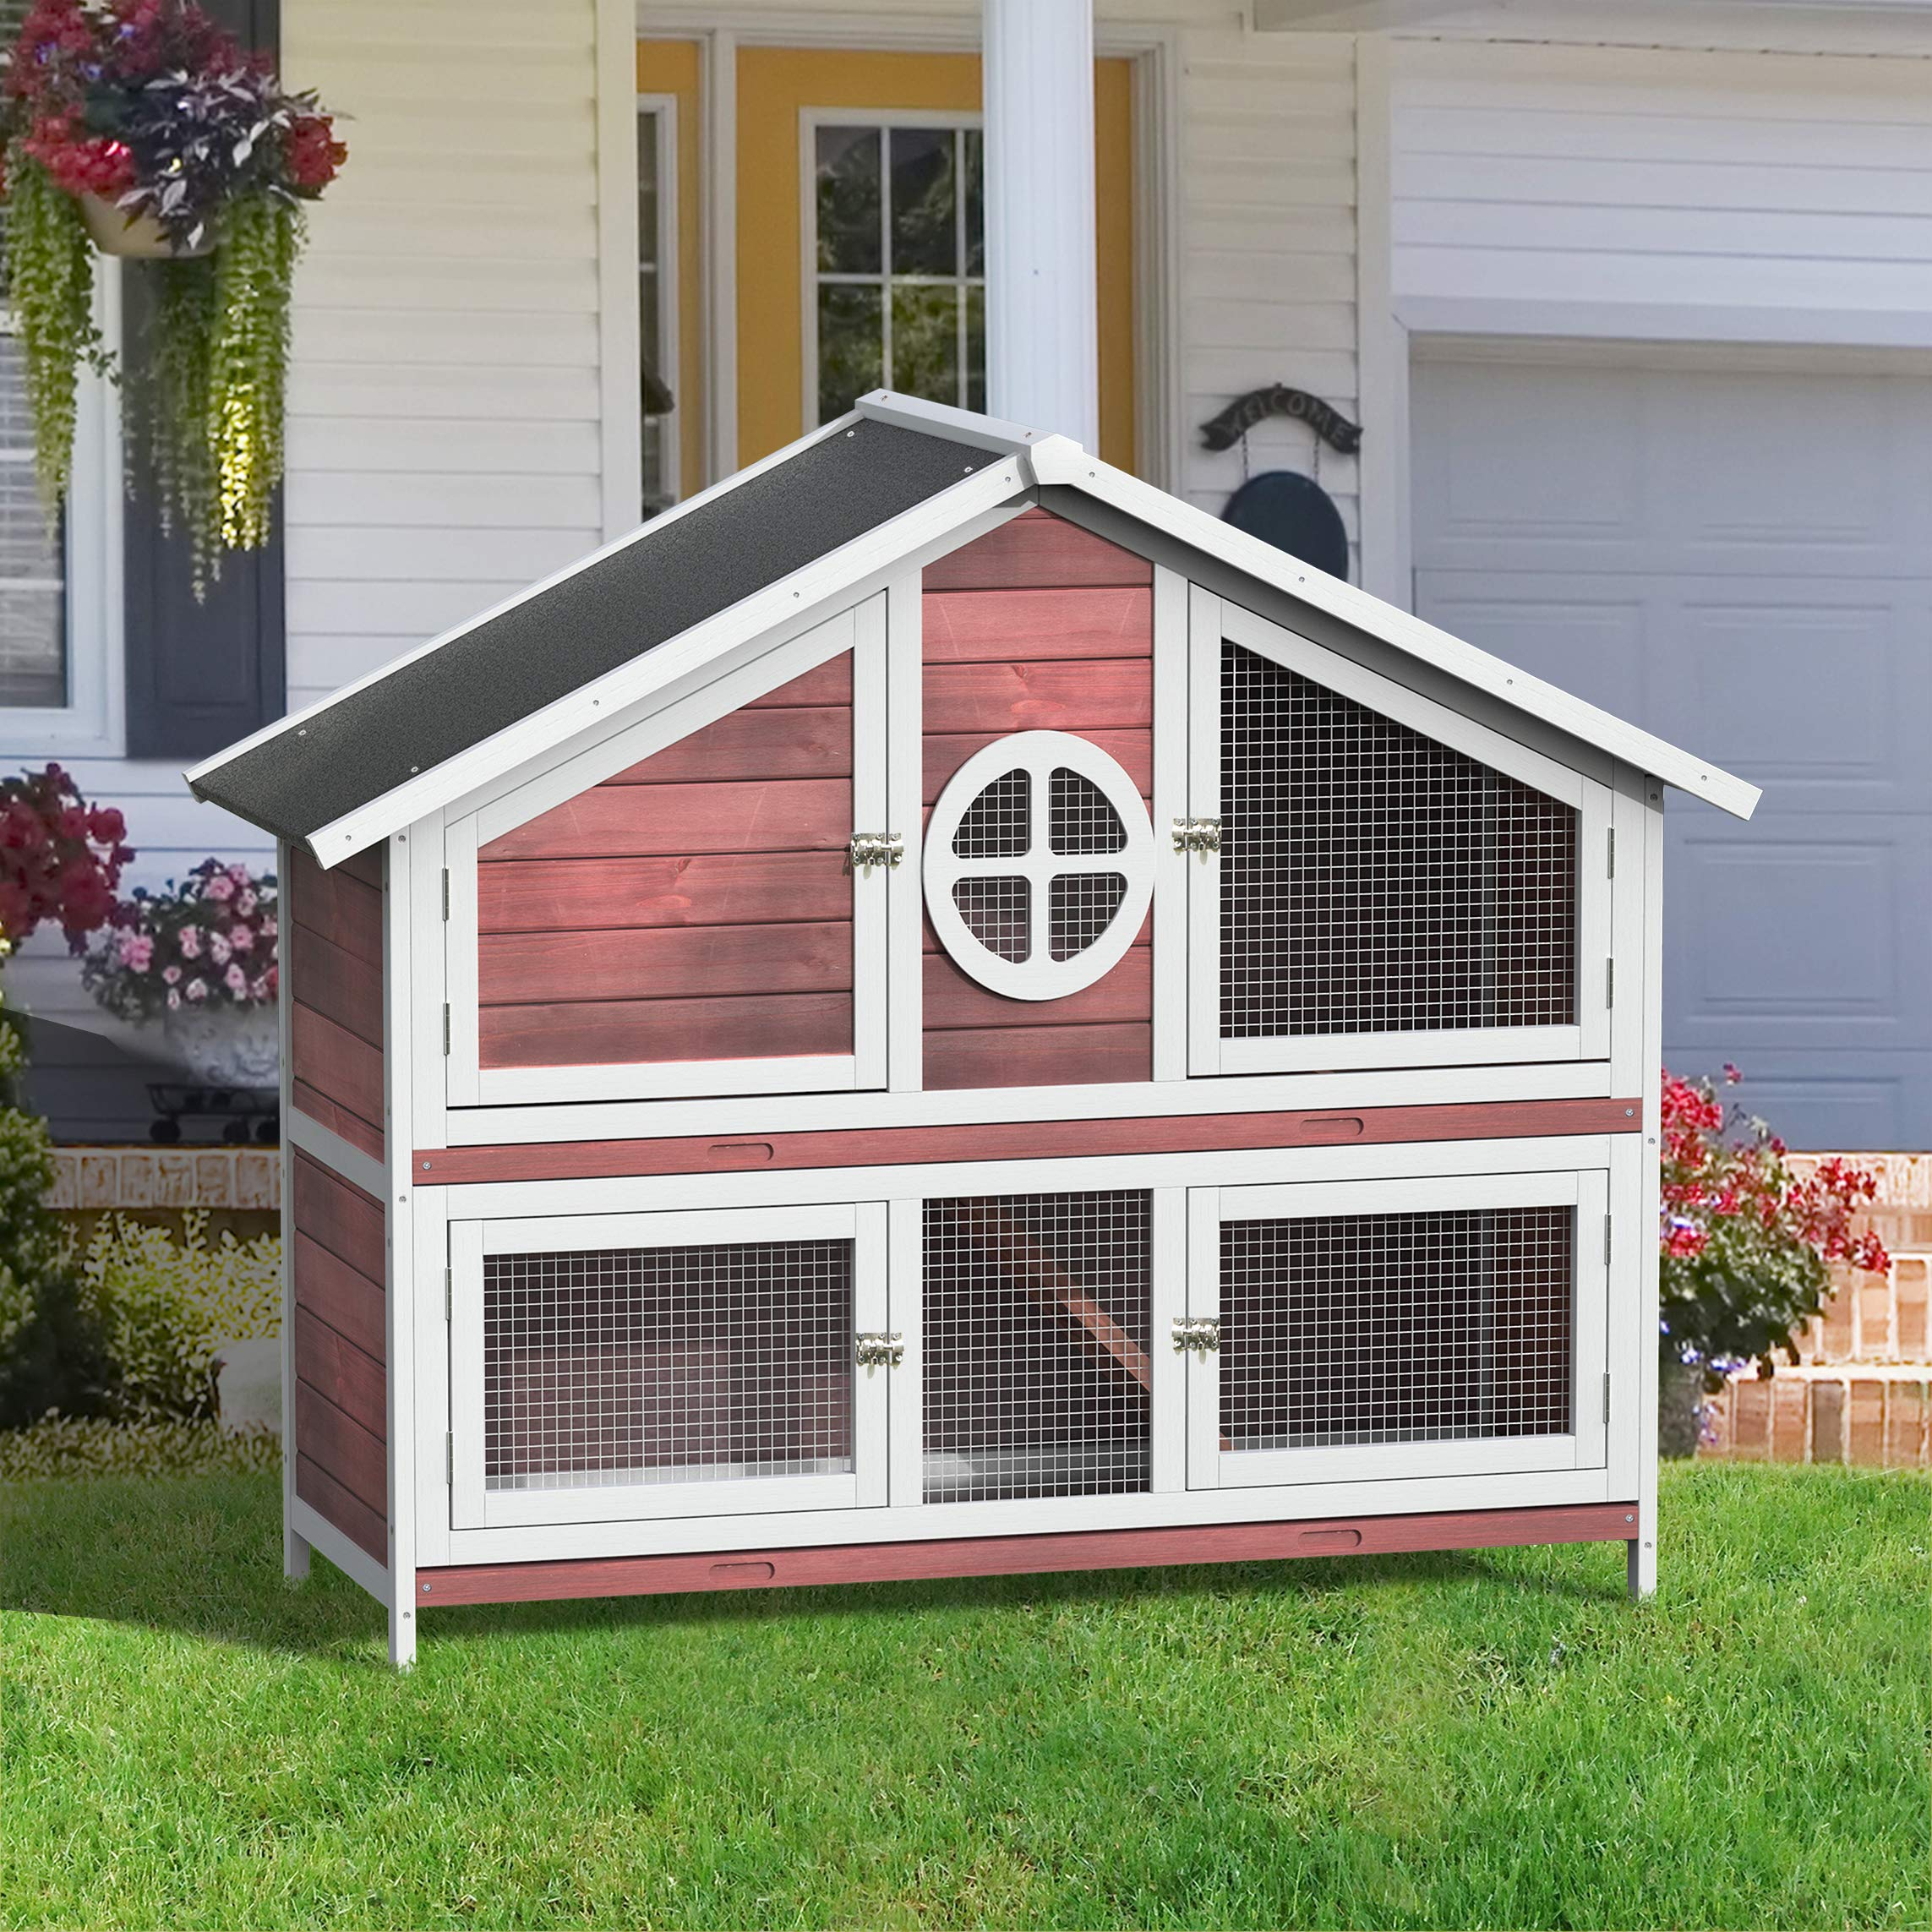 Merax Lz Leisure Zone 56'' Rabbit Hutch, Wooden Bunny Cage Small Animal Hutch Indoor & Outdoor -Red by Merax